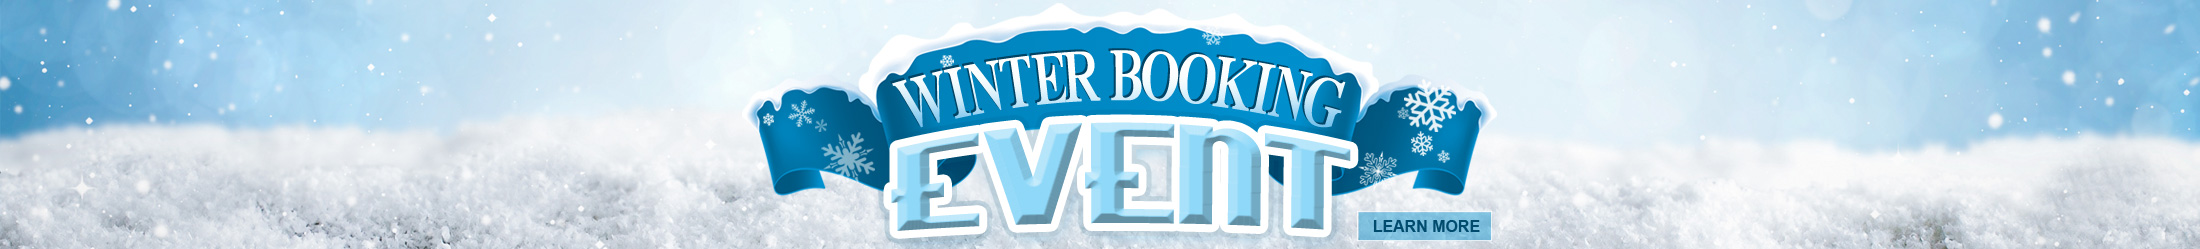 winter-booking-website-banner-int